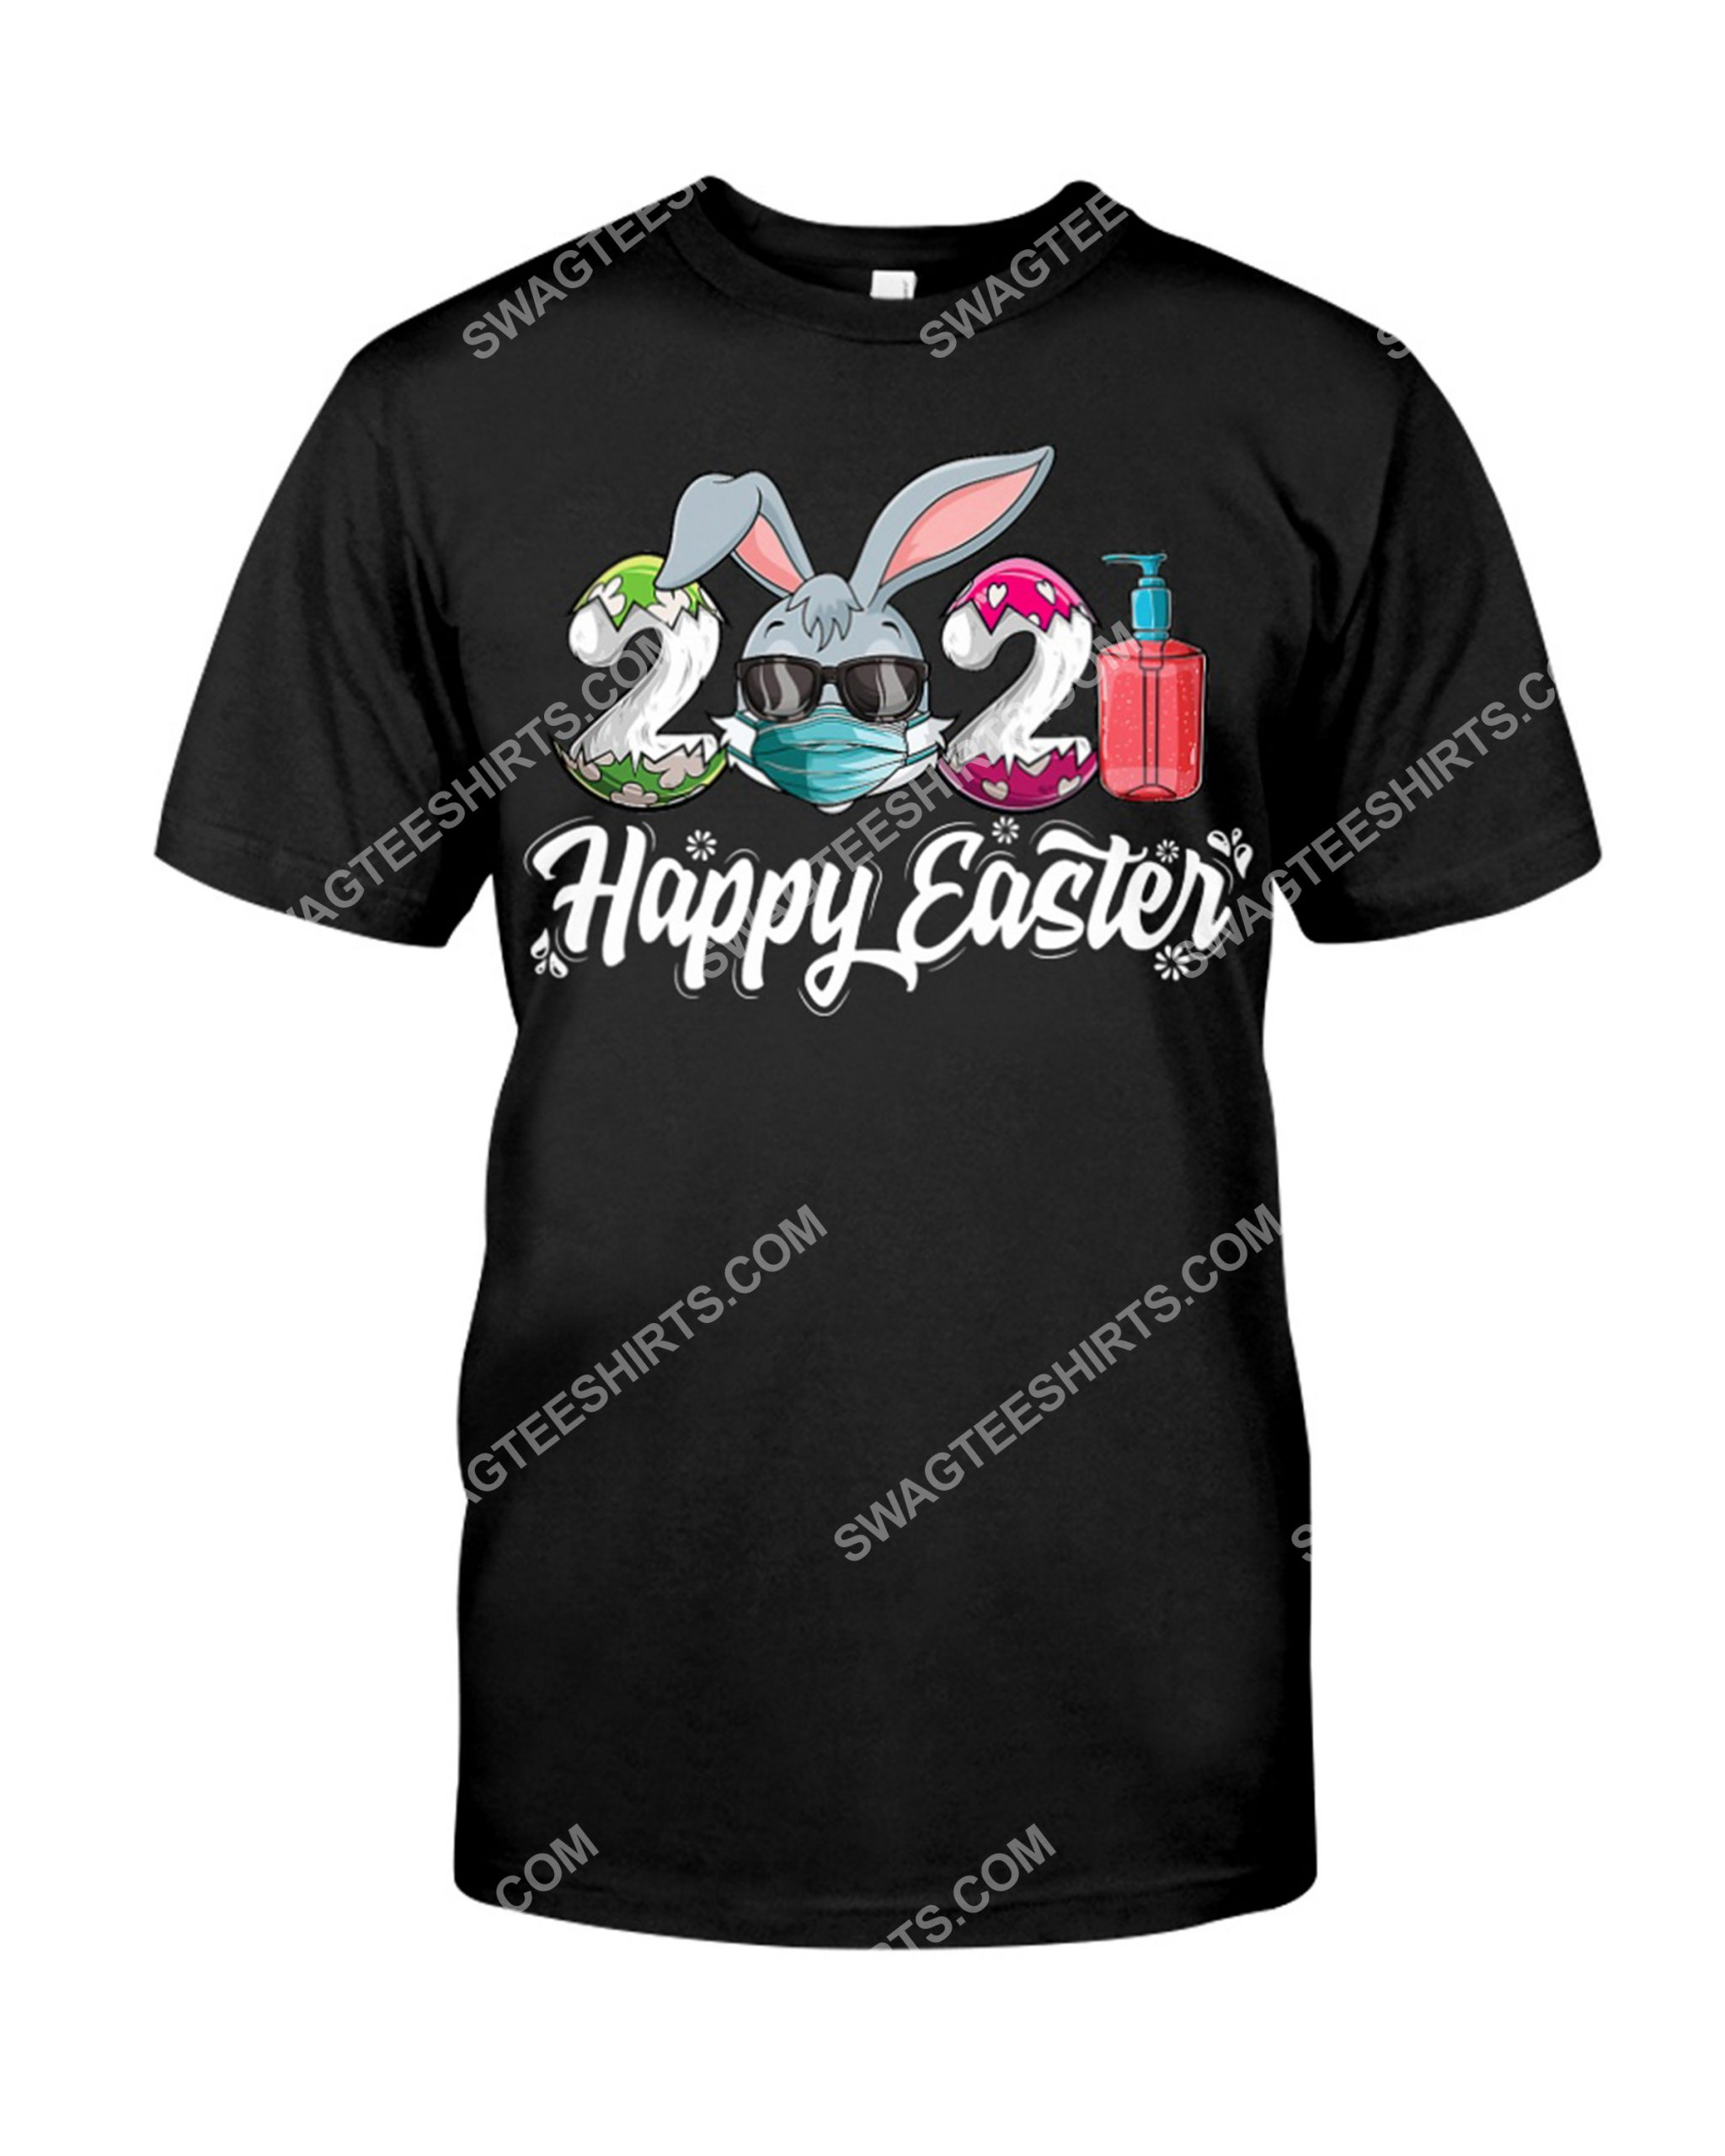 Happy Easter Day 2021 Bunny Wearing Mask Shirt 1(1)